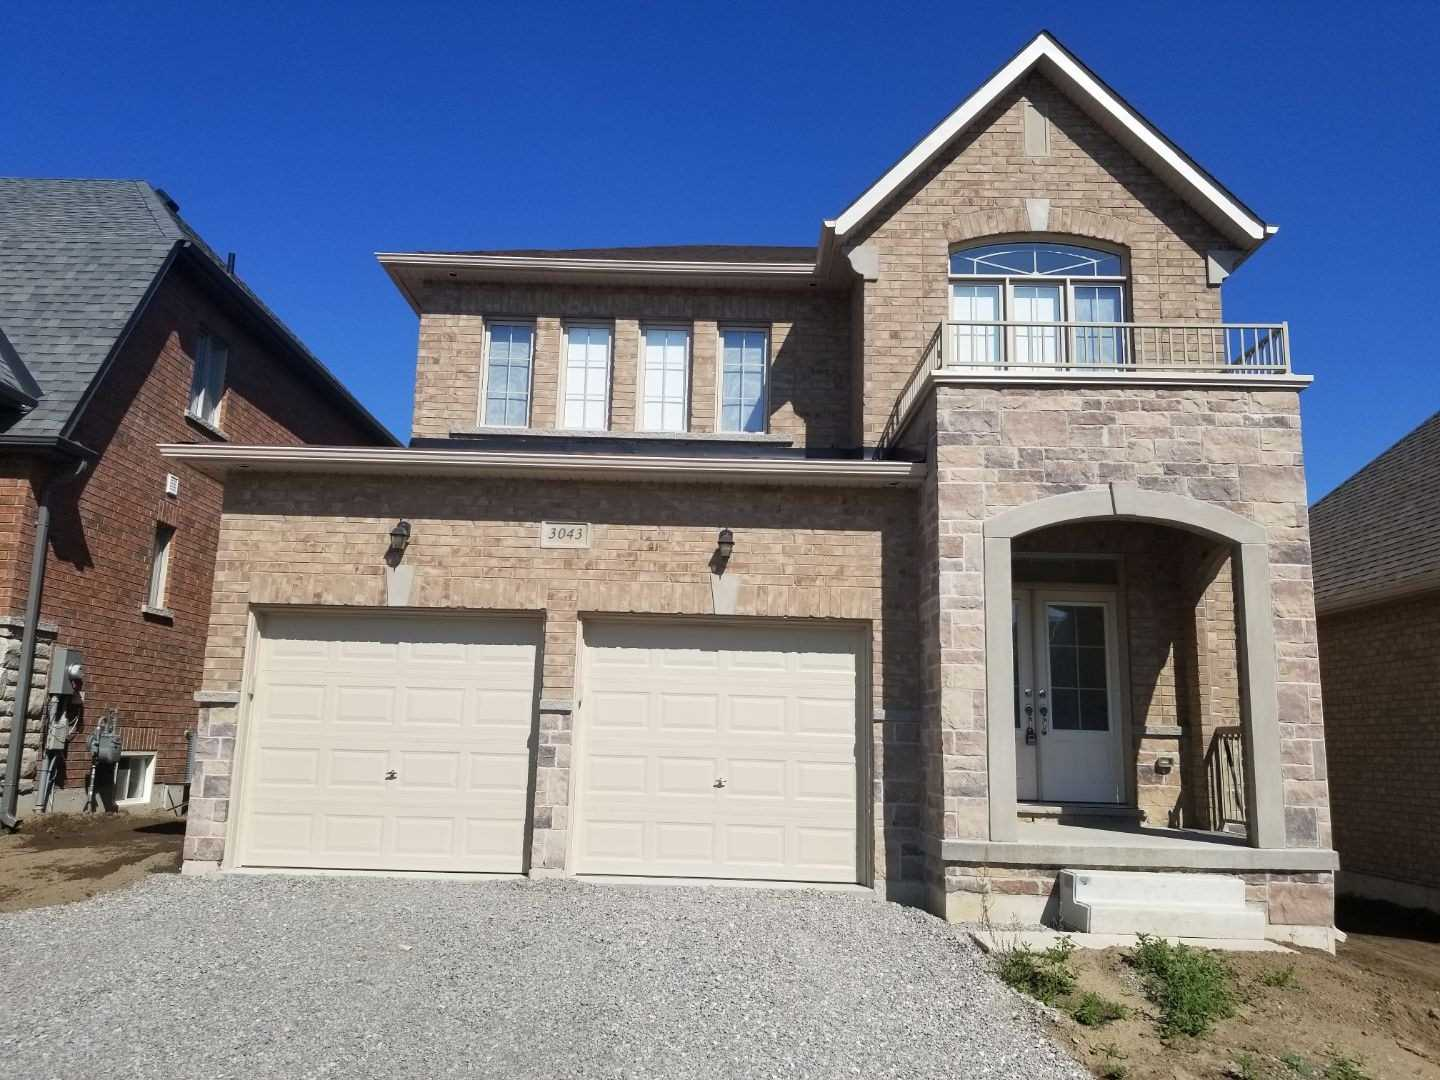 pictures of house for sale MLS: S4366103 located at 3043 Orion Blvd, Orillia L3V 6H2